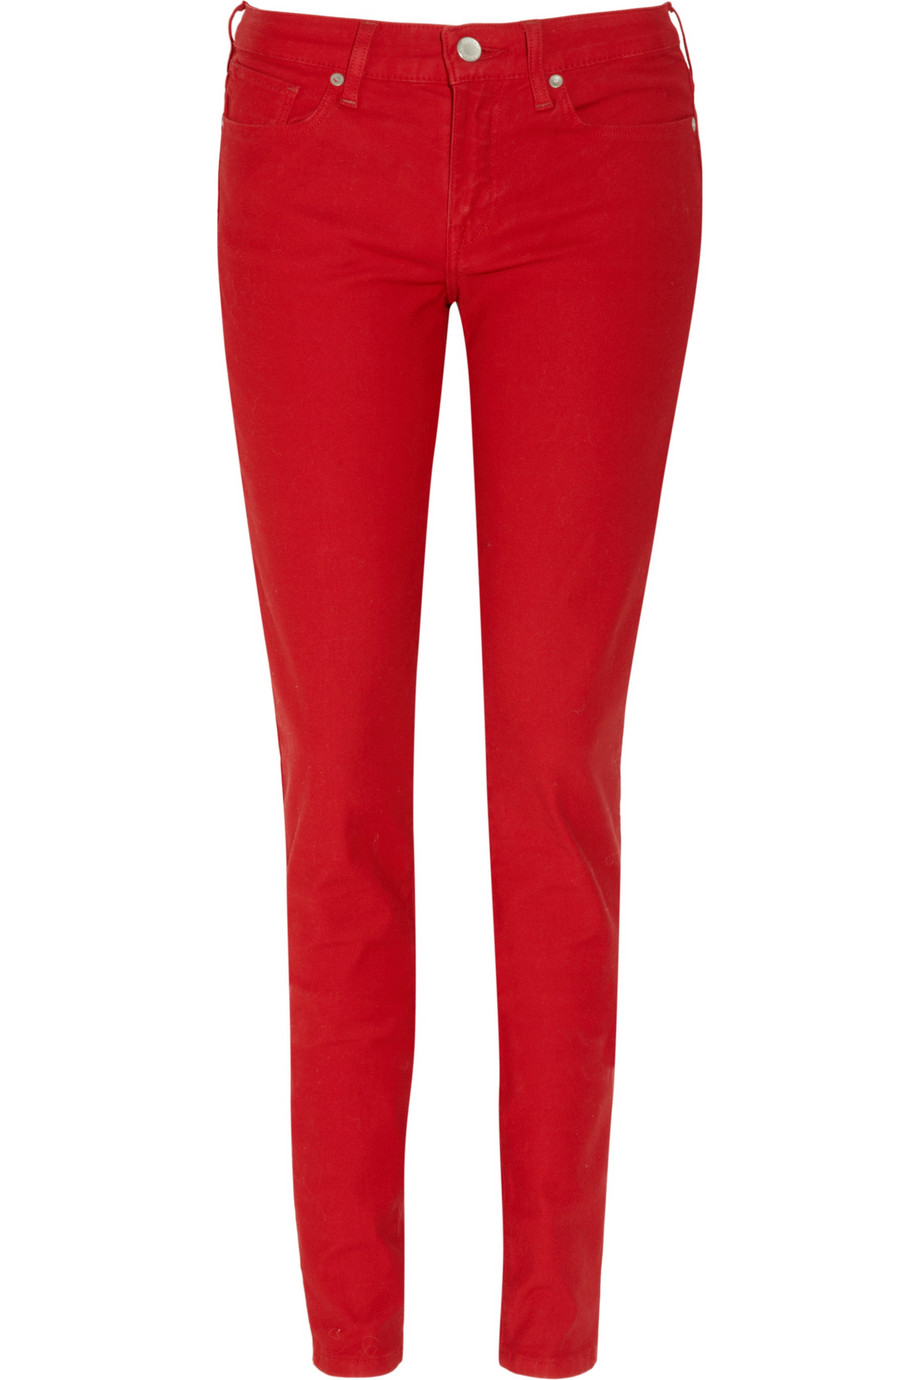 Empire mid-rise skinny jeans   Levi's Made & Crafted   THE OUTNET